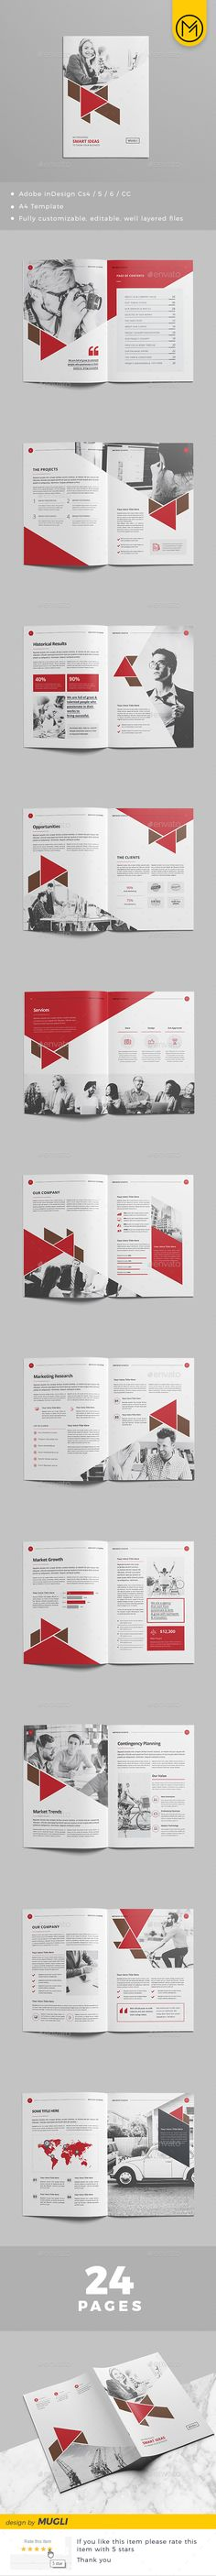 Brochure Design — InDesign INDD #clean proposal #proposal web • Download ➝ https://graphicriver.net/item/brochure-design/21203614?ref=pxcr